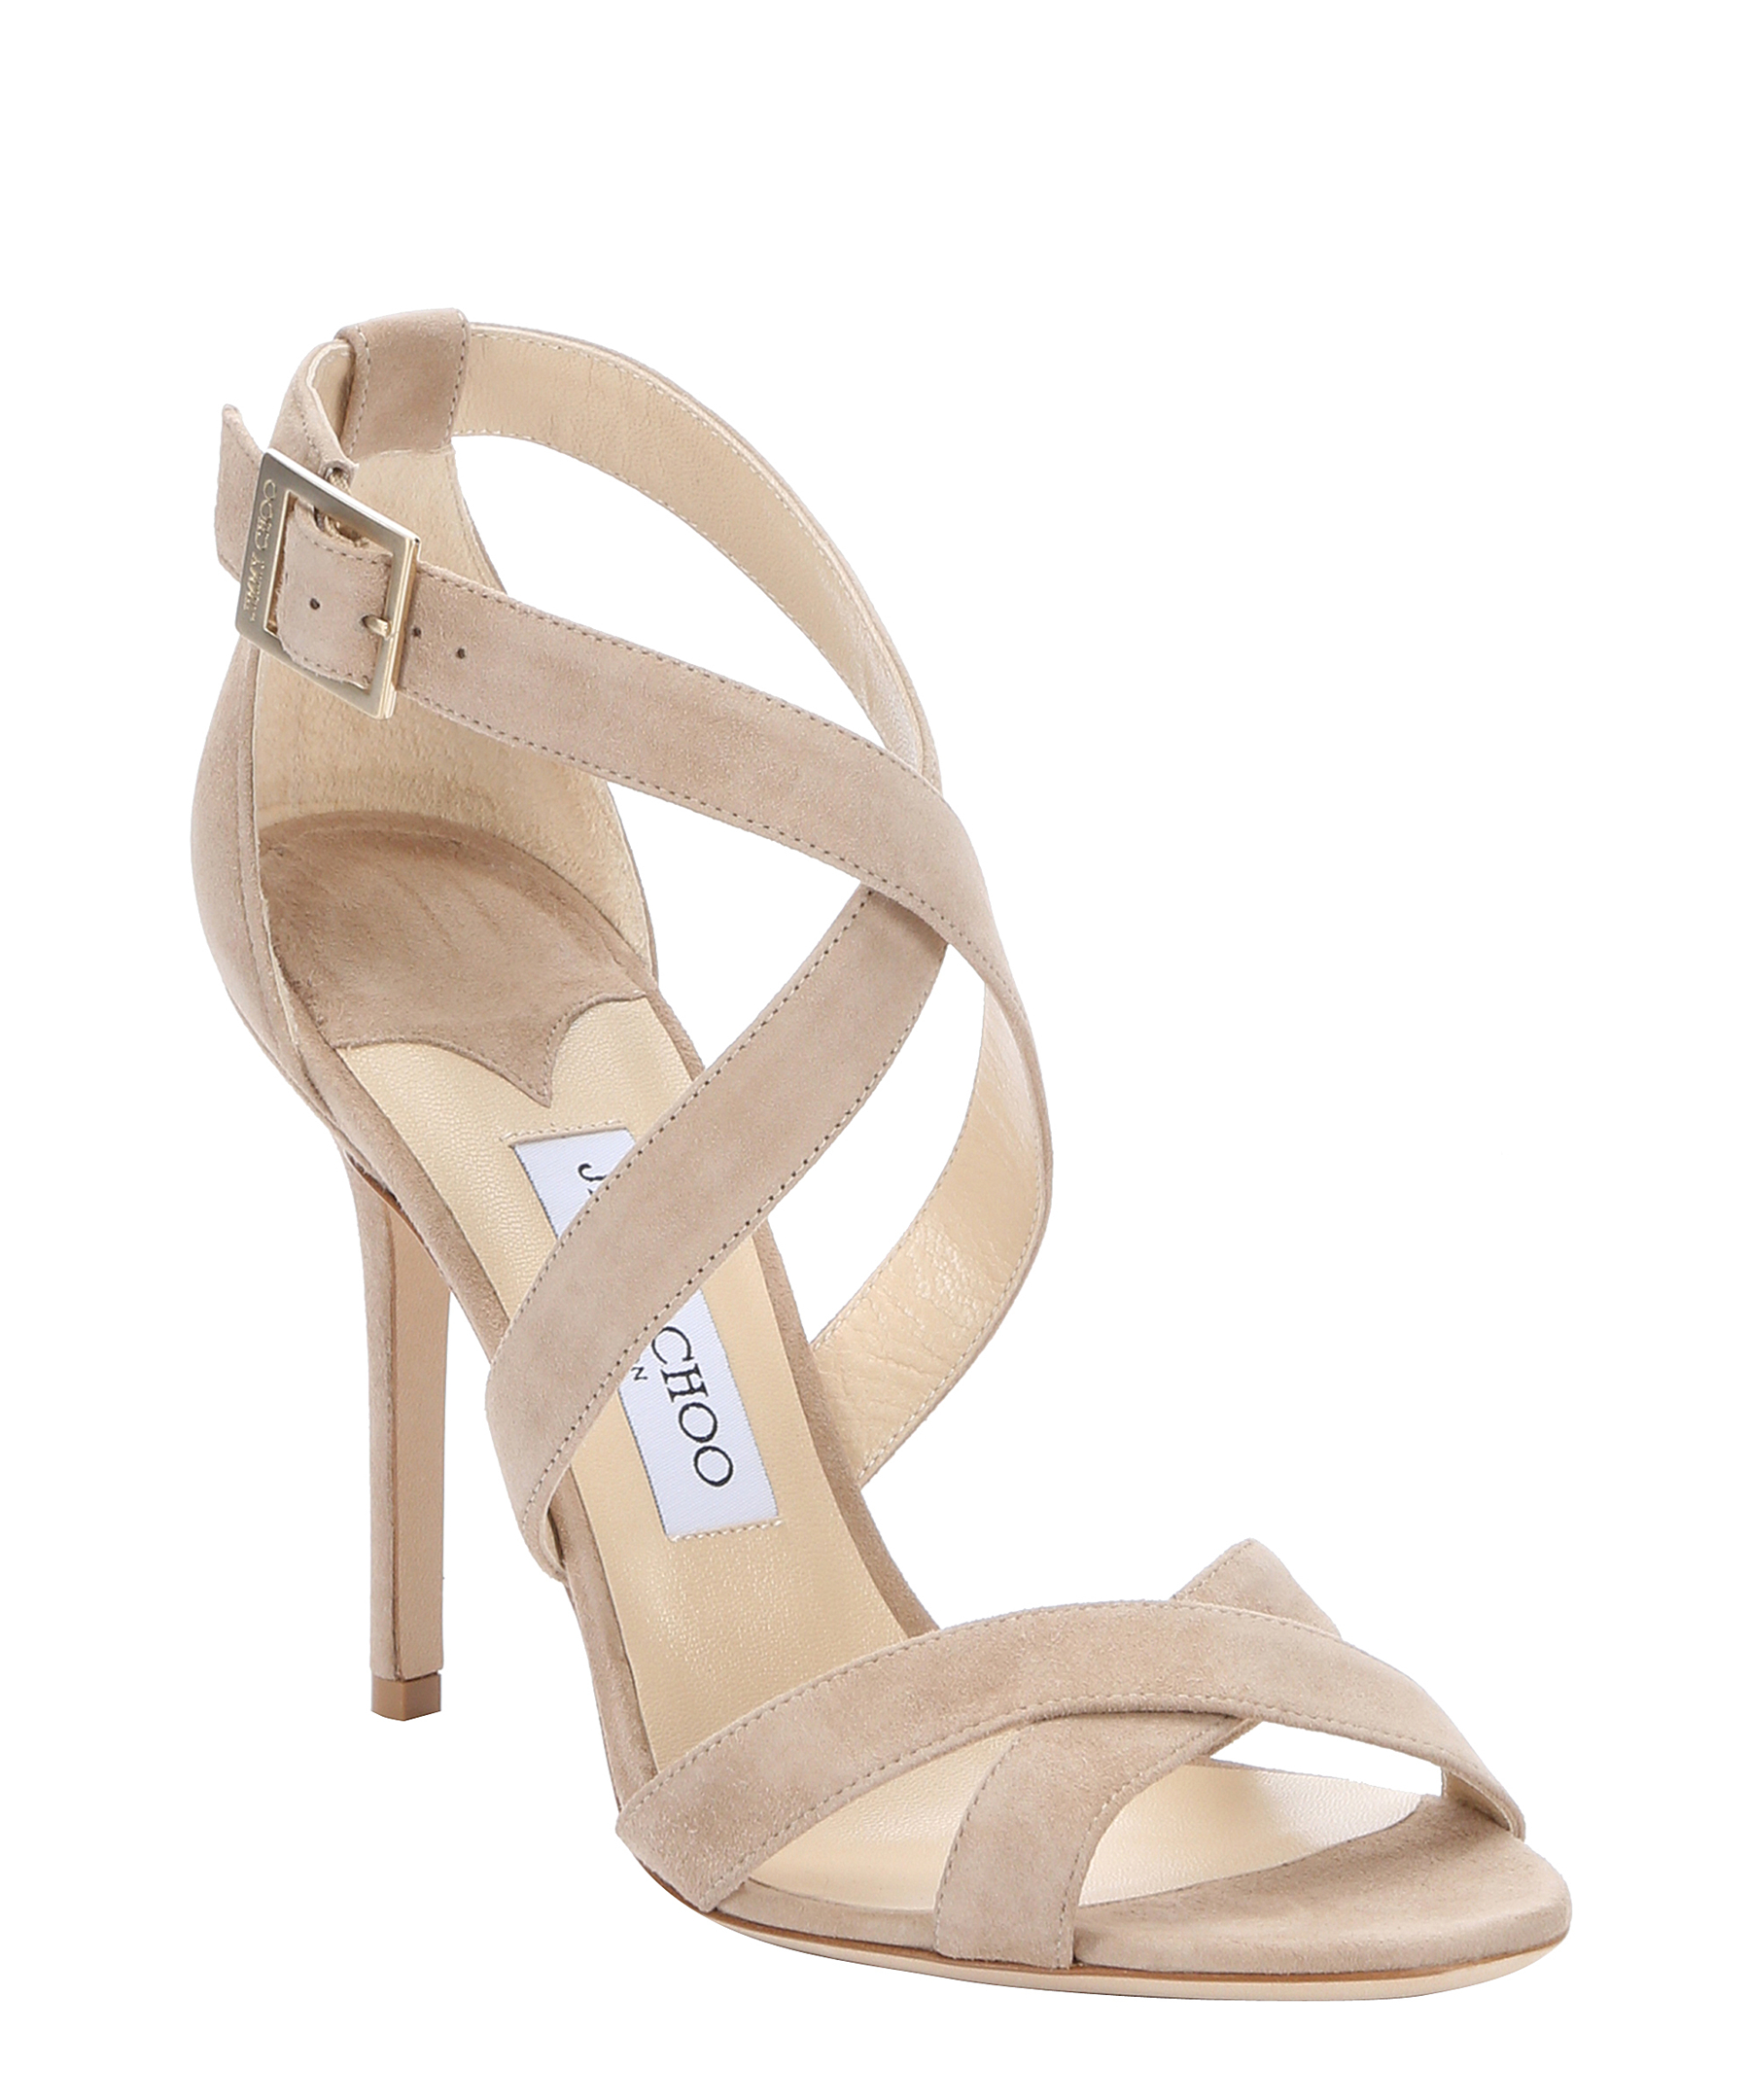 Jimmy choo nude suede 39 lottie 39 strappy sandals in beige for Jimmy choo mens shirts